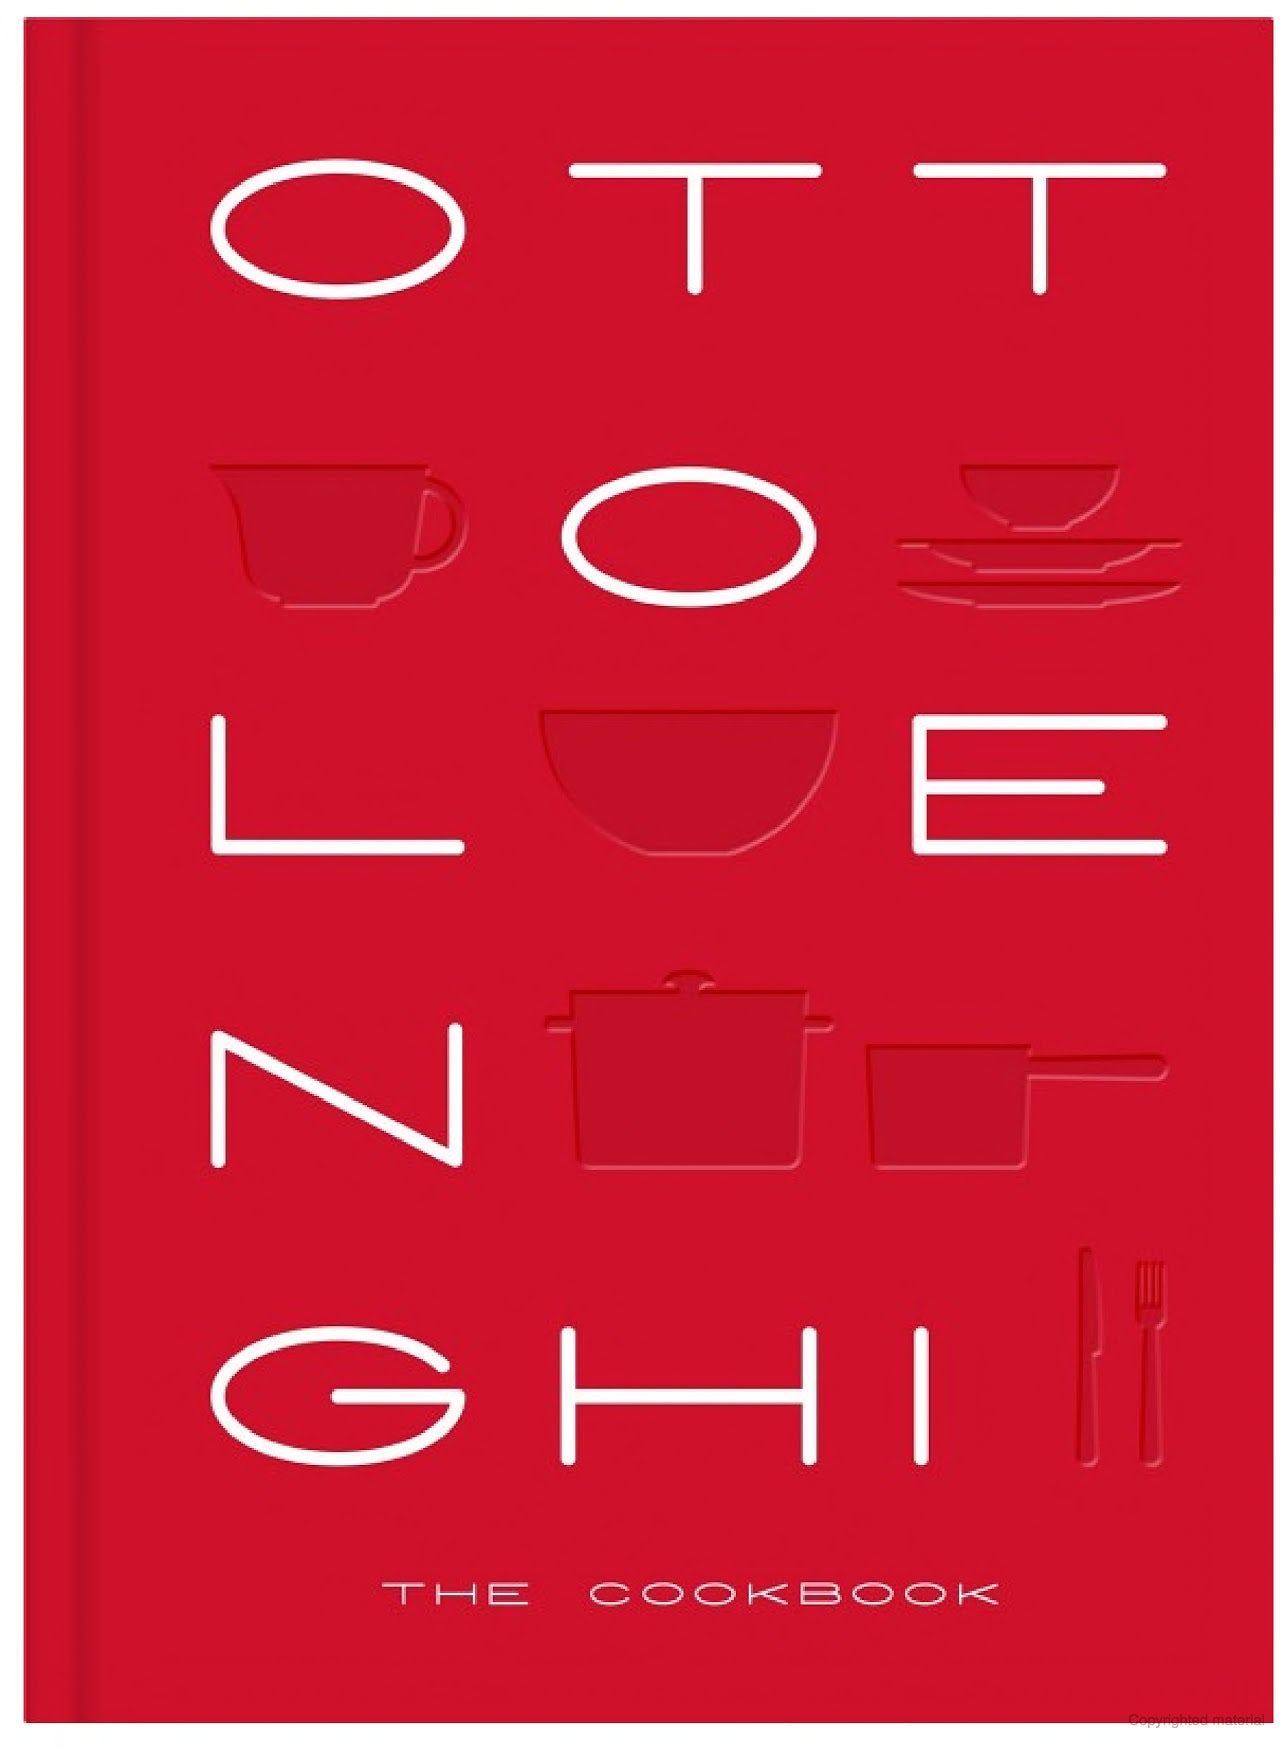 OTTOLENGHI: THE COOK BOOK